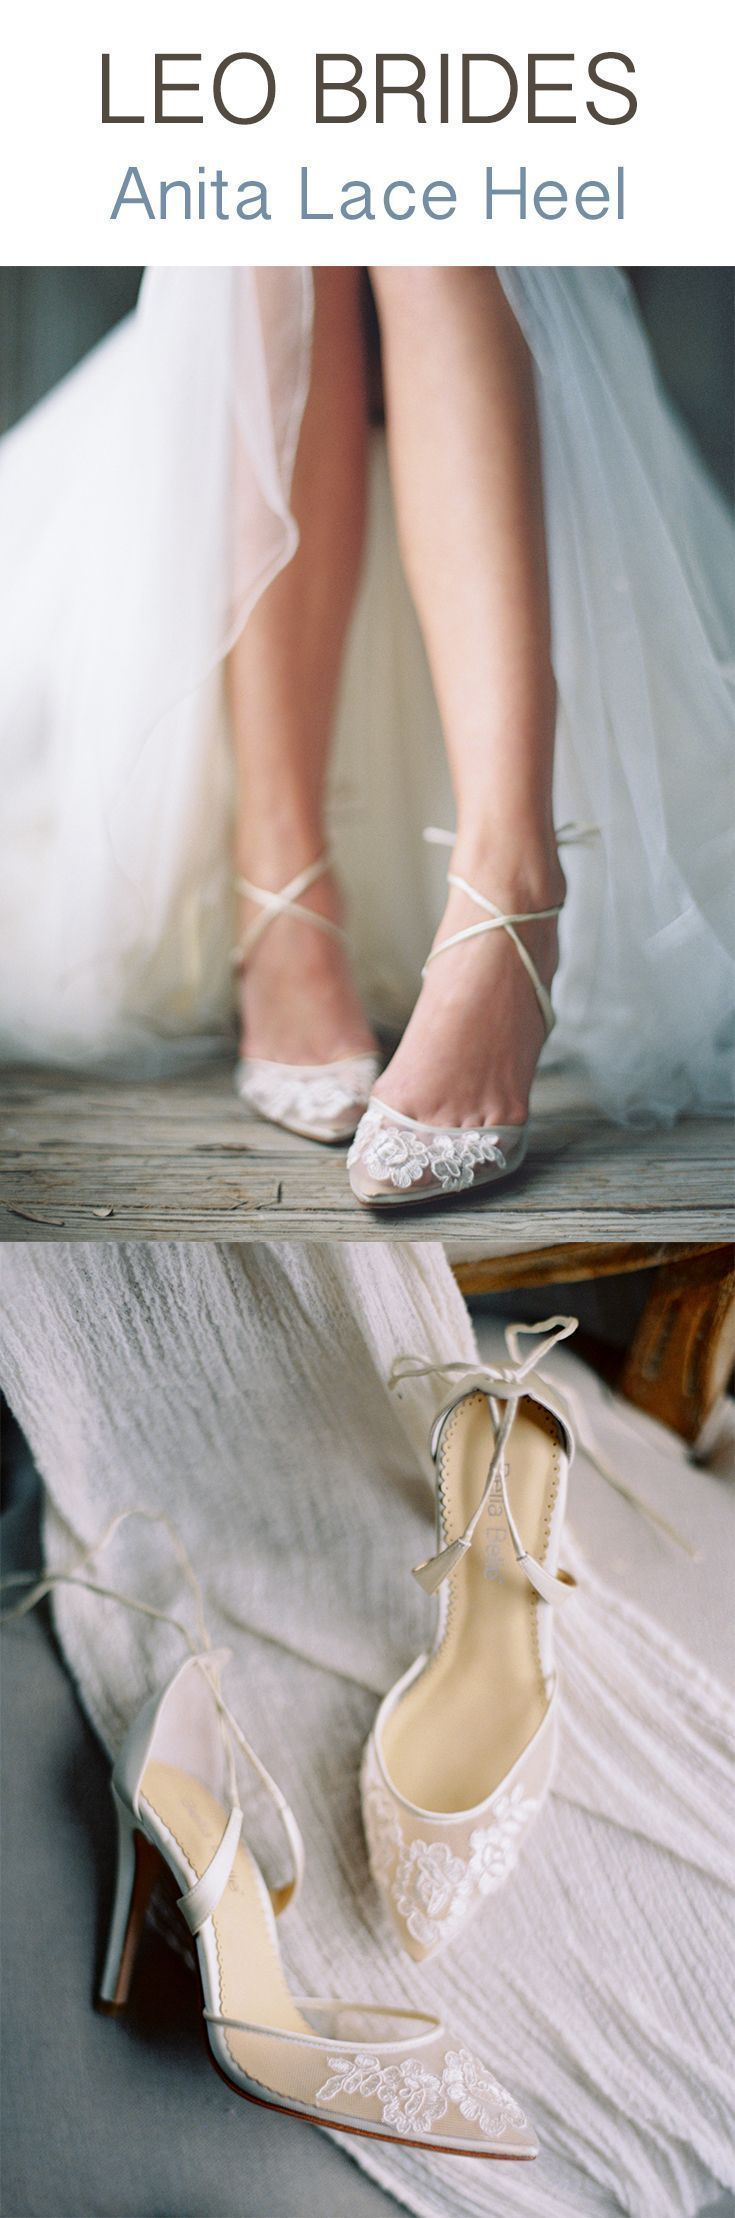 For Leo Brides! The Bella Belle Anita lace wedding shoes are a vision of classic, timeless, elegant, sophistication and feminine. Featuring a ballerina ankle tie strap that elongates your legs, extra padding for extra comfort for your feet, and high quality floral lace details for your shoes to look amazing on pictures, these wedding heels are a vision of beauty! Photography: Bethany Erin #highheelsphotography #weddingshoes